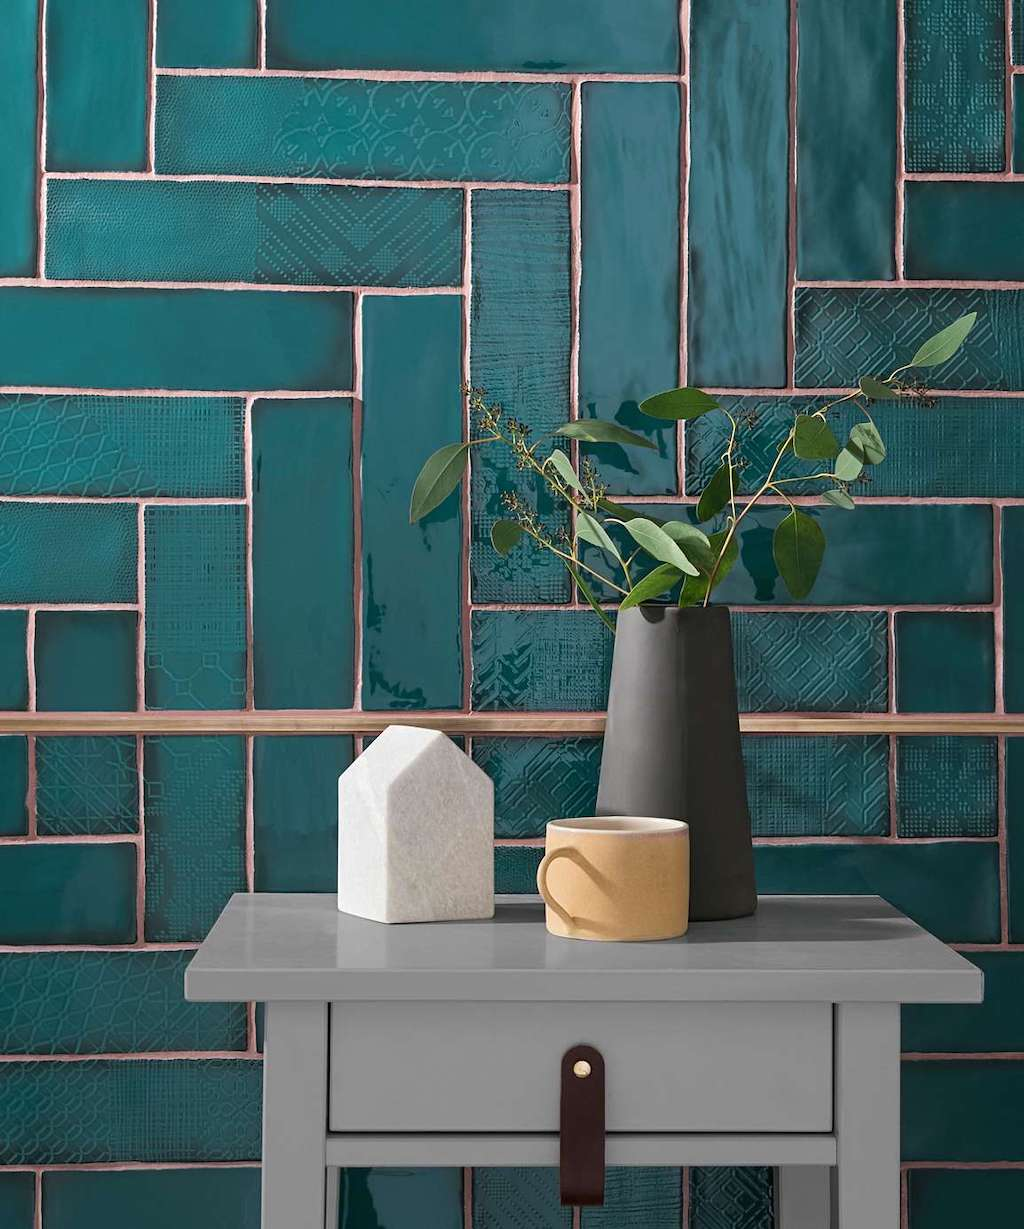 Metro Brick Tiles 14 Pattern Ideas For Kitchens And Bathrooms Haticexinterior